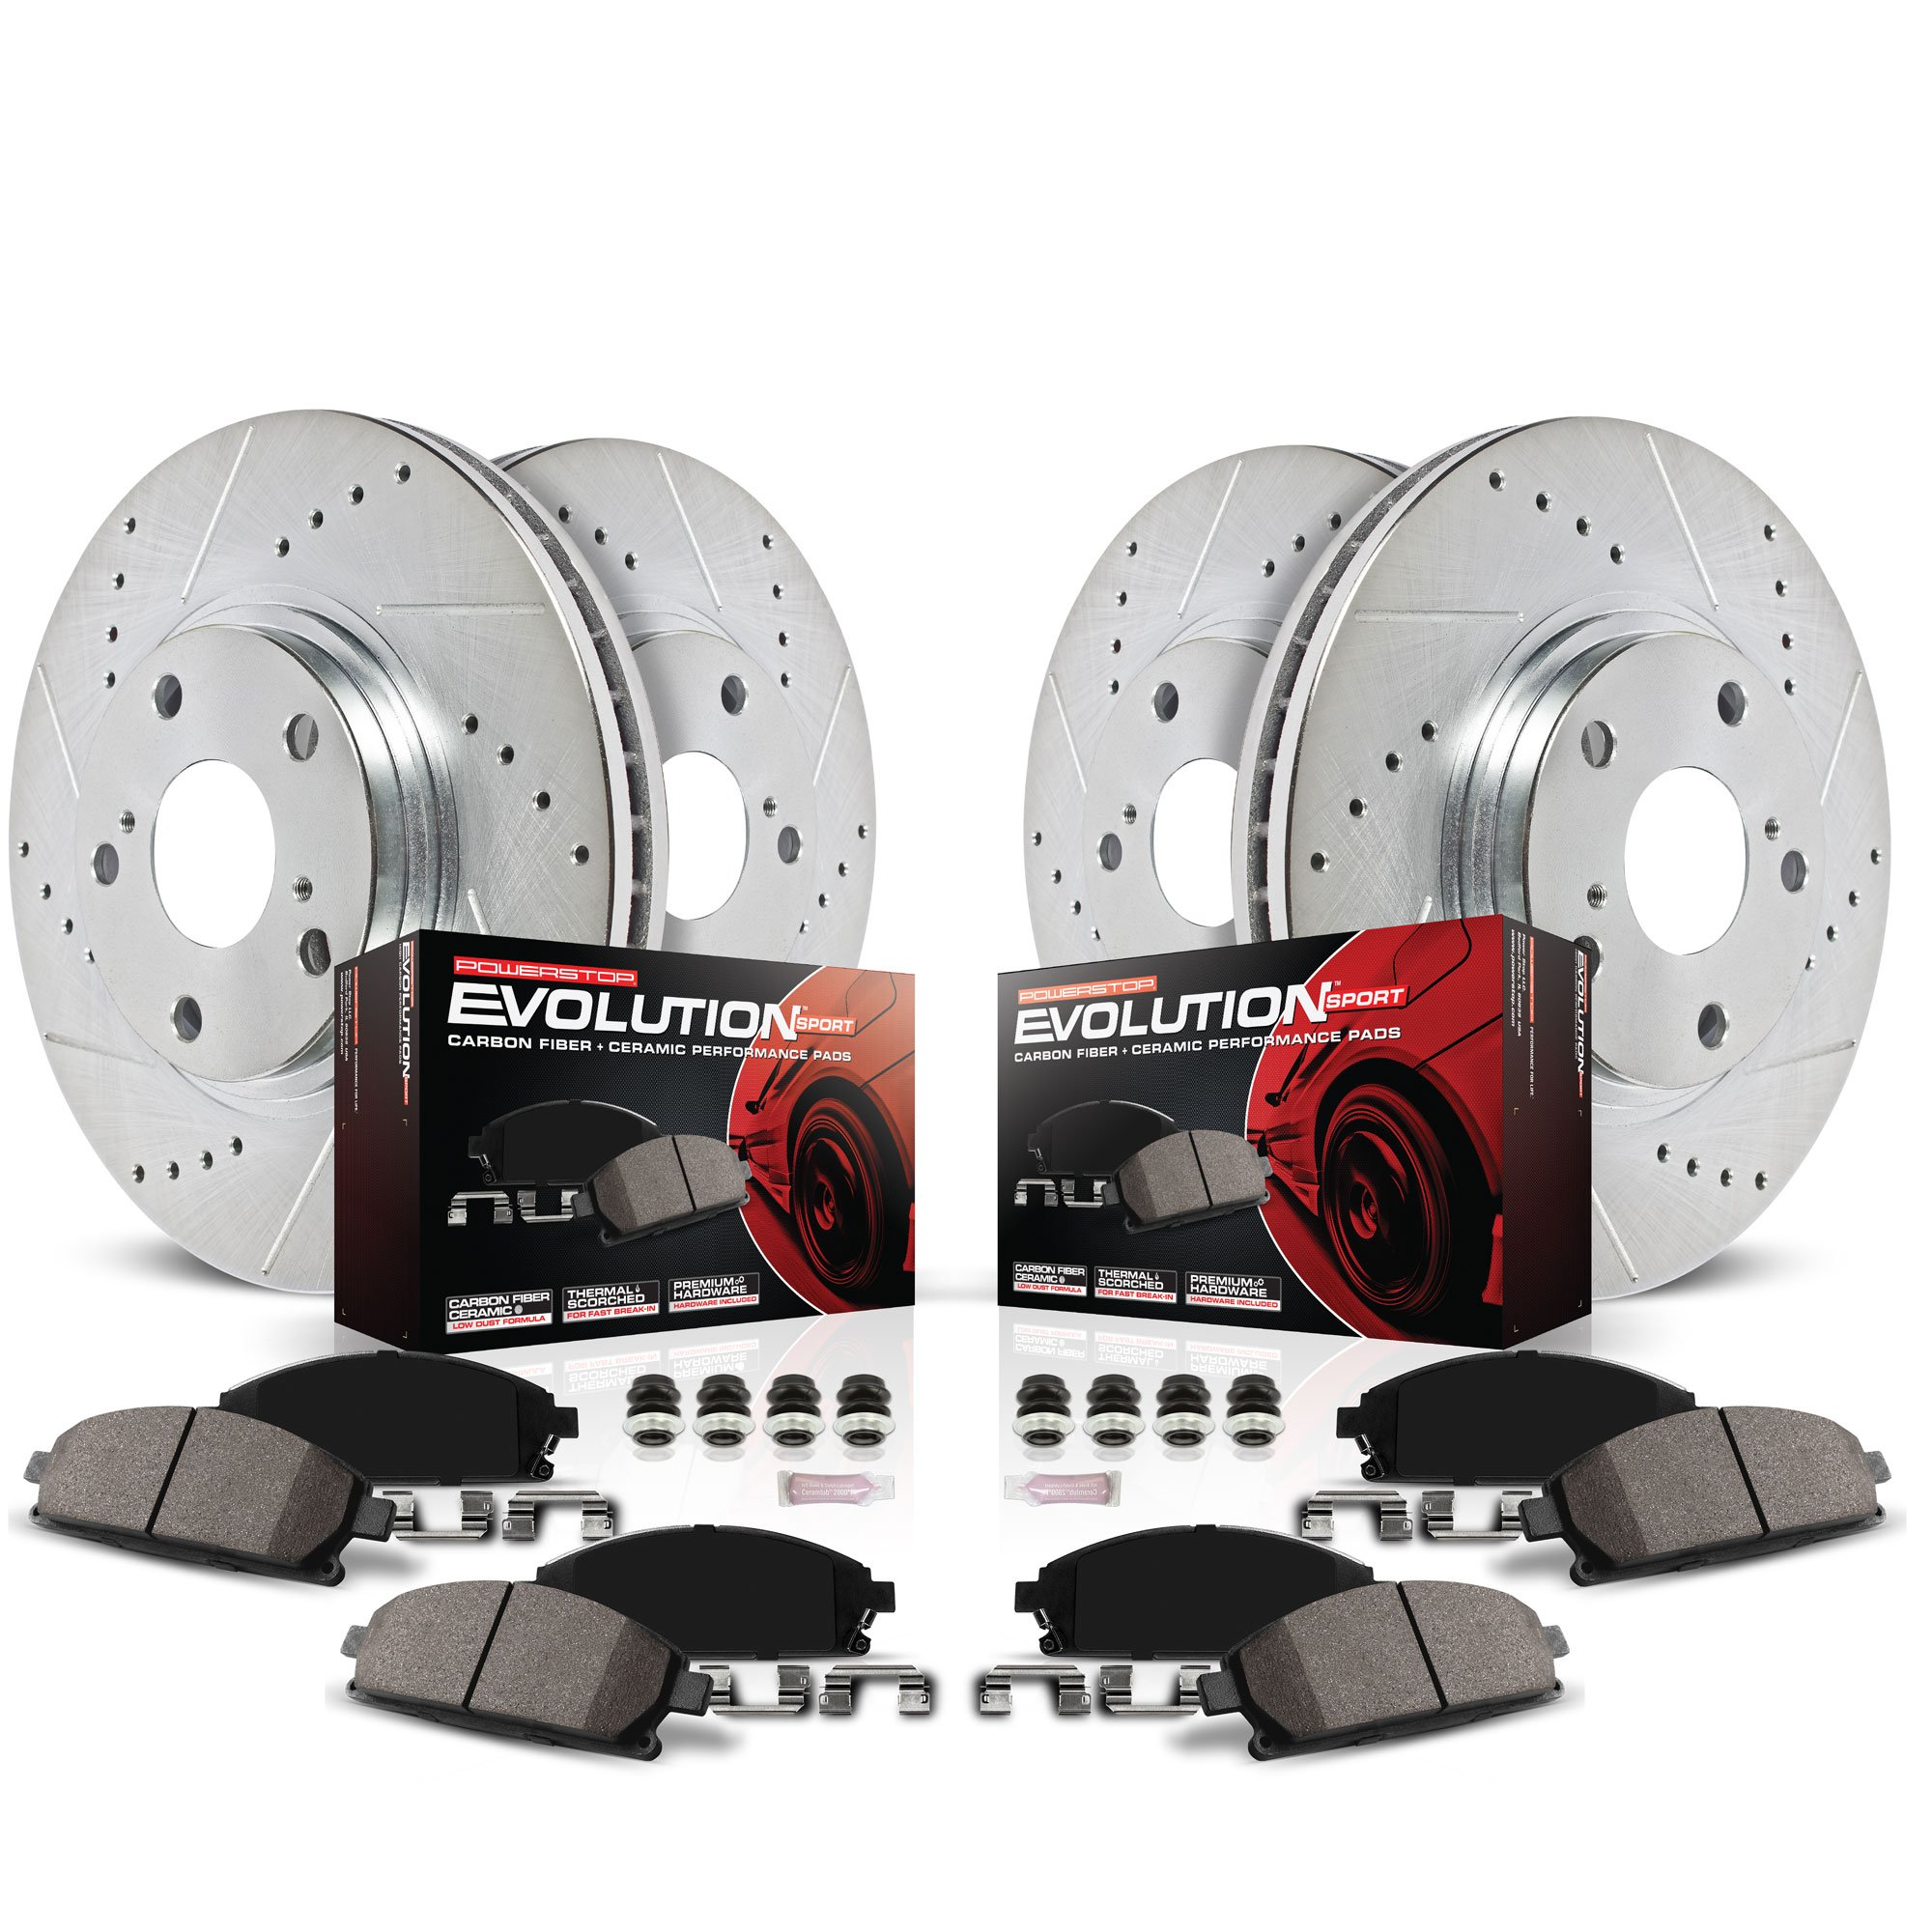 Power Stop K4129 Front and Rear Z23 Evolution Brake Kit with Drilled/Slotted Rotors and Ceramic Brake Pads by POWERSTOP (Image #2)